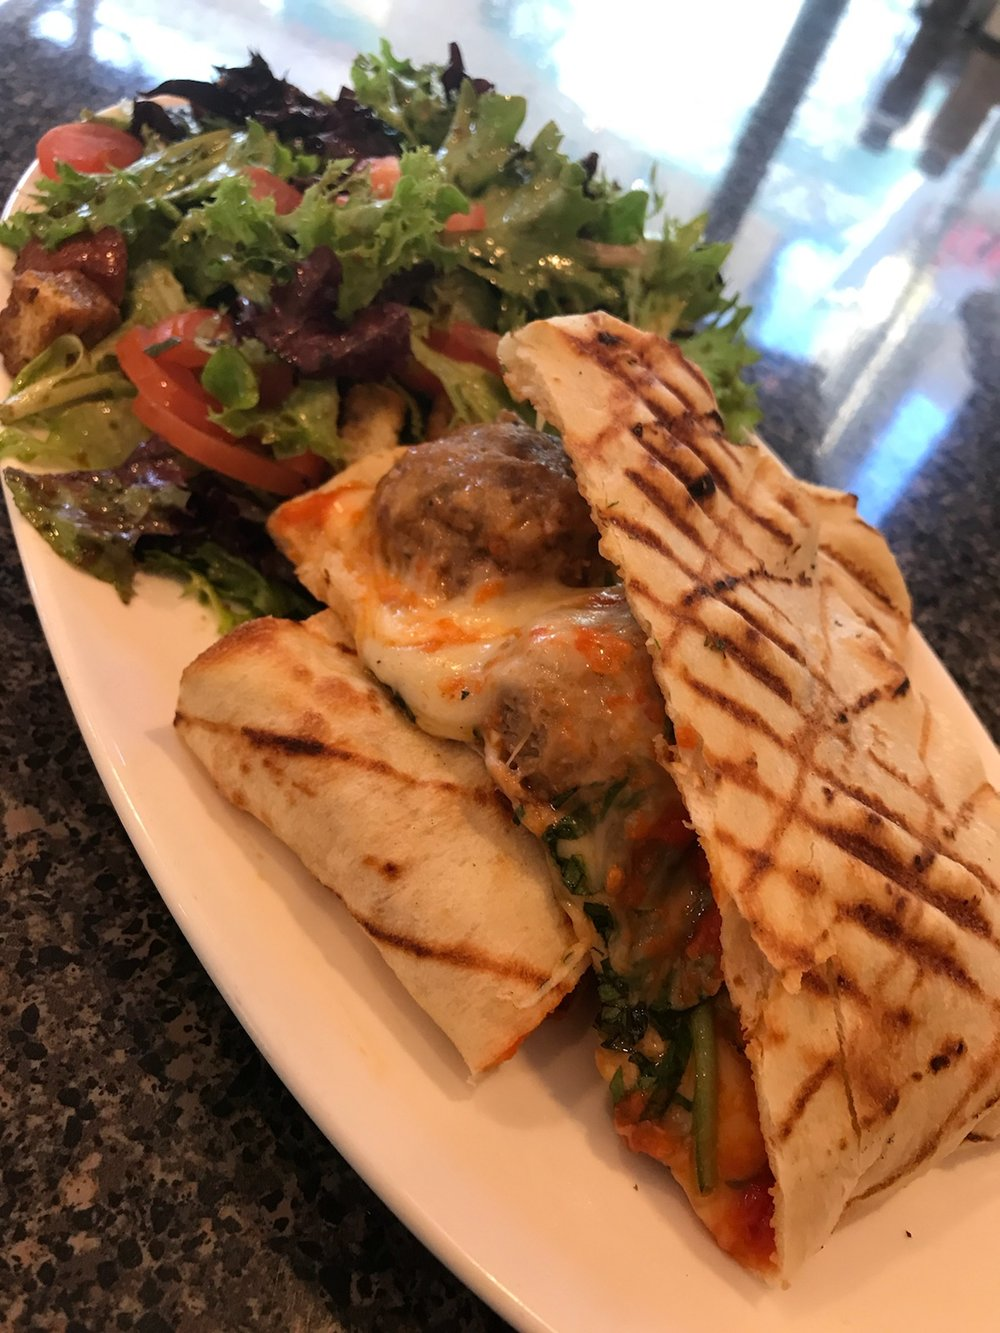 NATIONAL MEATBALL DAY - MARCH 9TH, 2018For one day only, we're bringing back our Meatball Panini for lunch in celebration of National Meatball Day! Don't miss it.